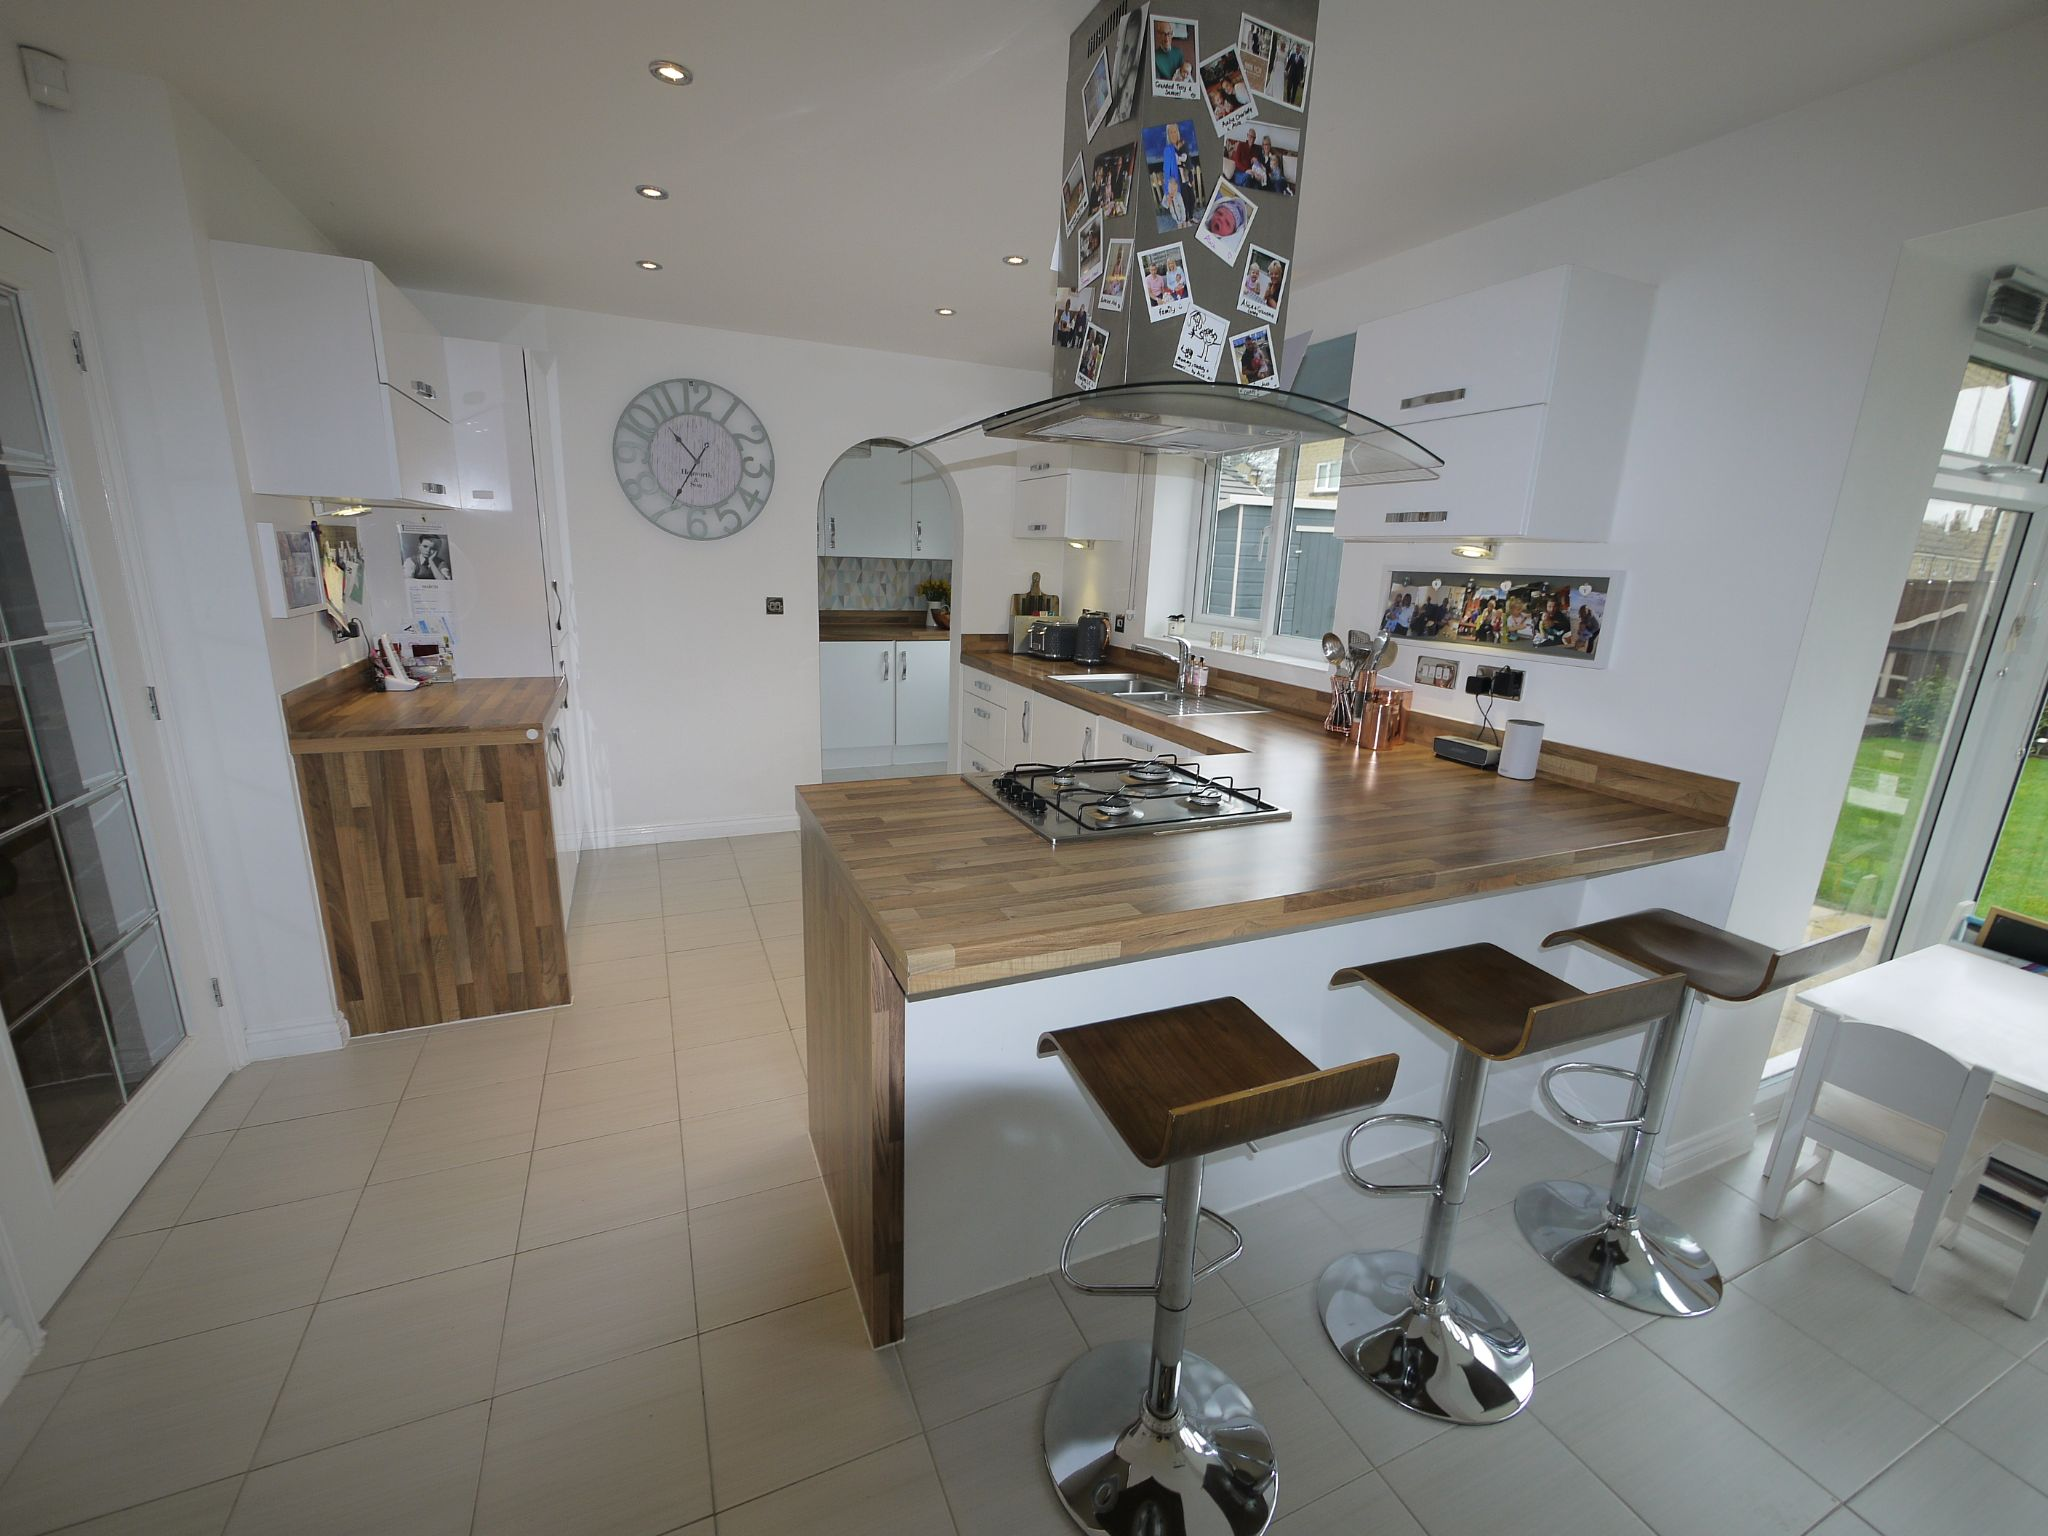 4 bedroom detached house SSTC in Huddersfield - Dining Kitchen 3.